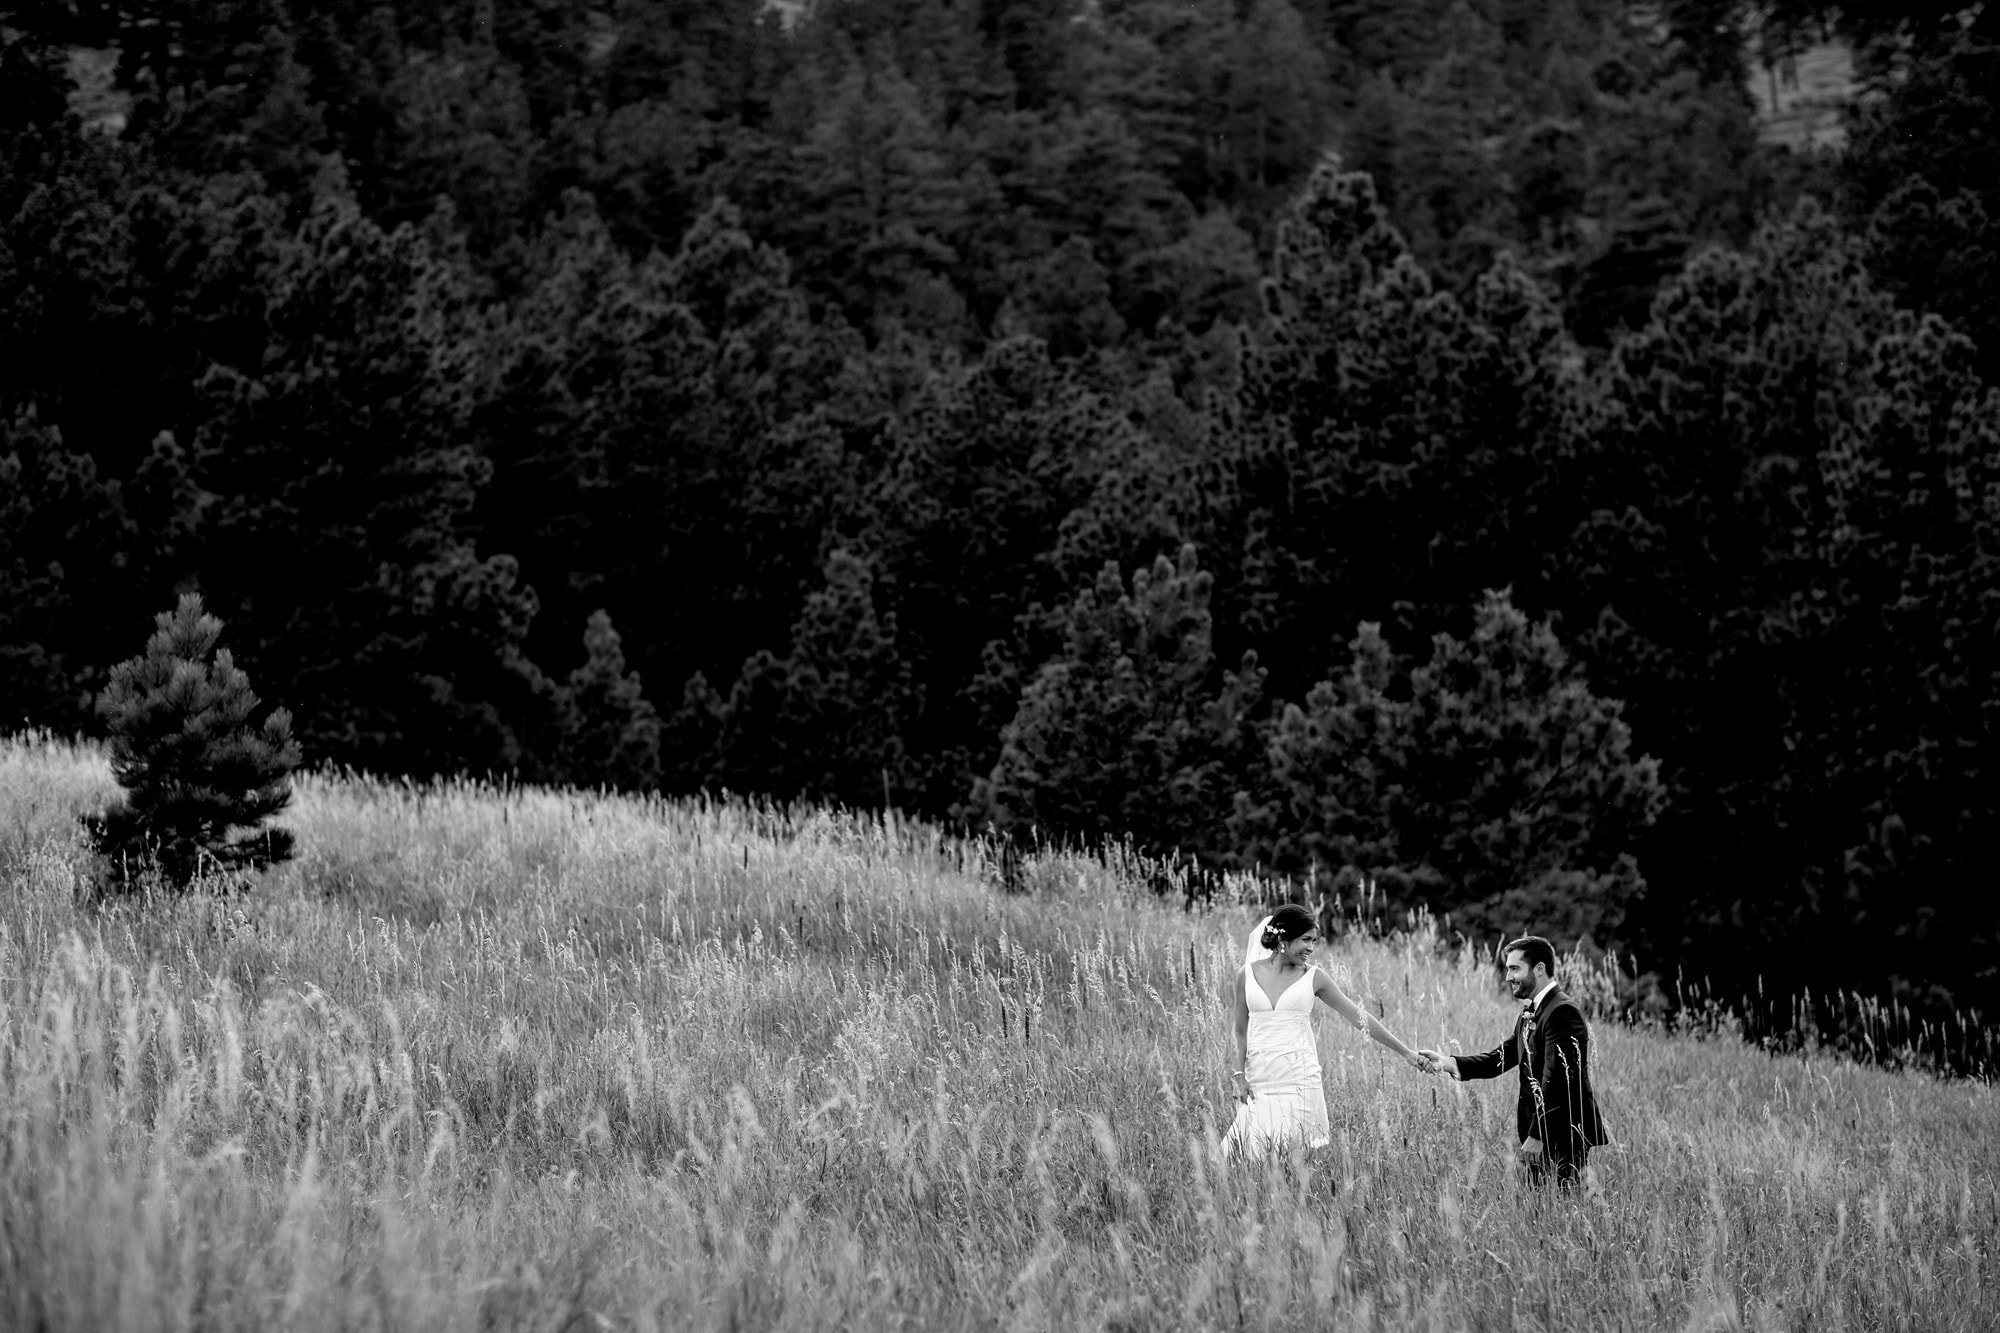 Megan pulls Bryan up the hill in the long grass at Centennial Park Trailhead in Boulder